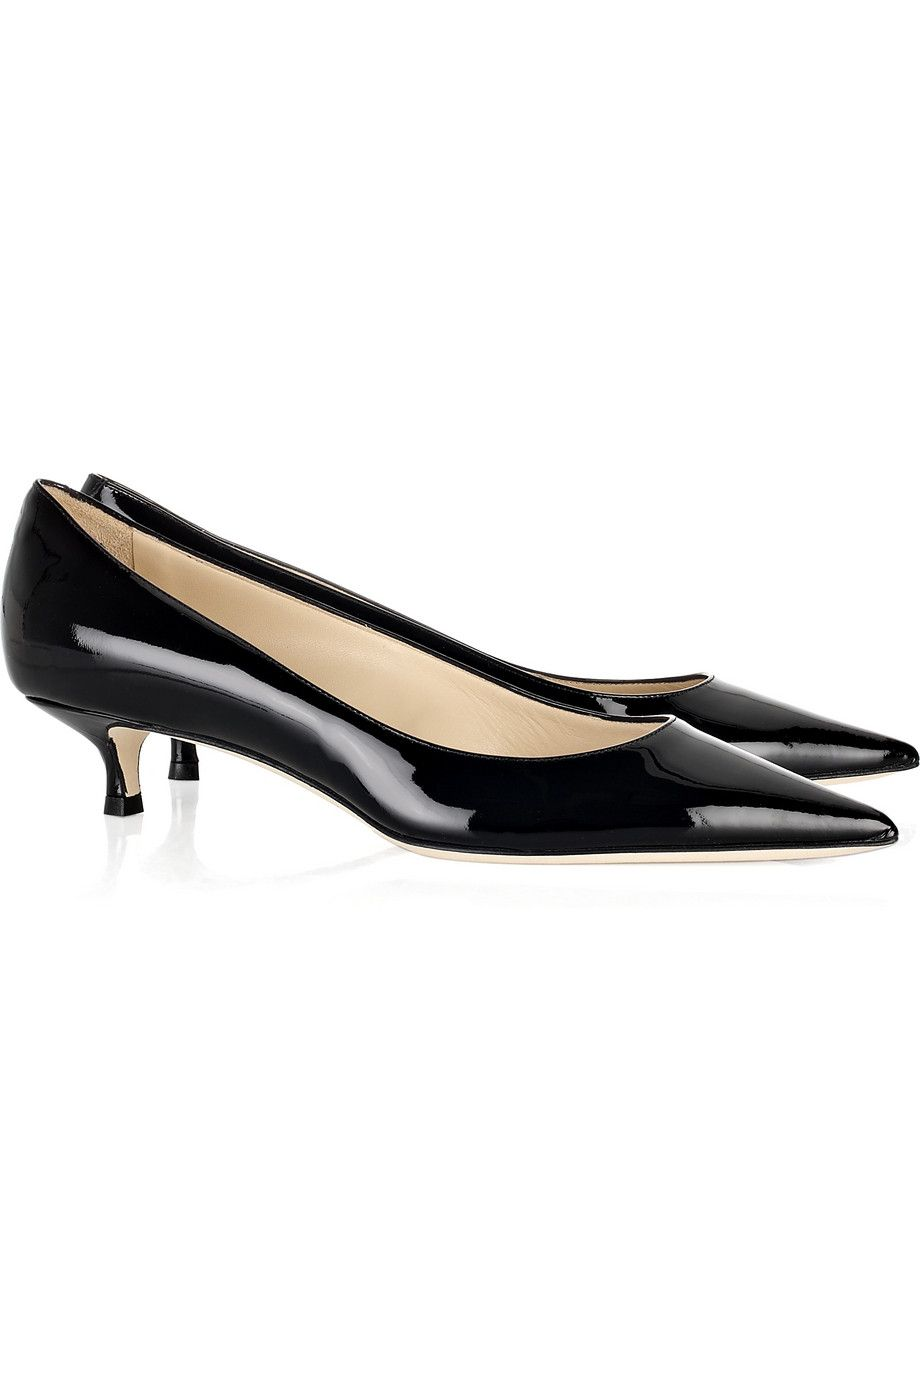 Jimmy Choo | Lennox patent-leather pumps | NET-A-PORTER.COM ...